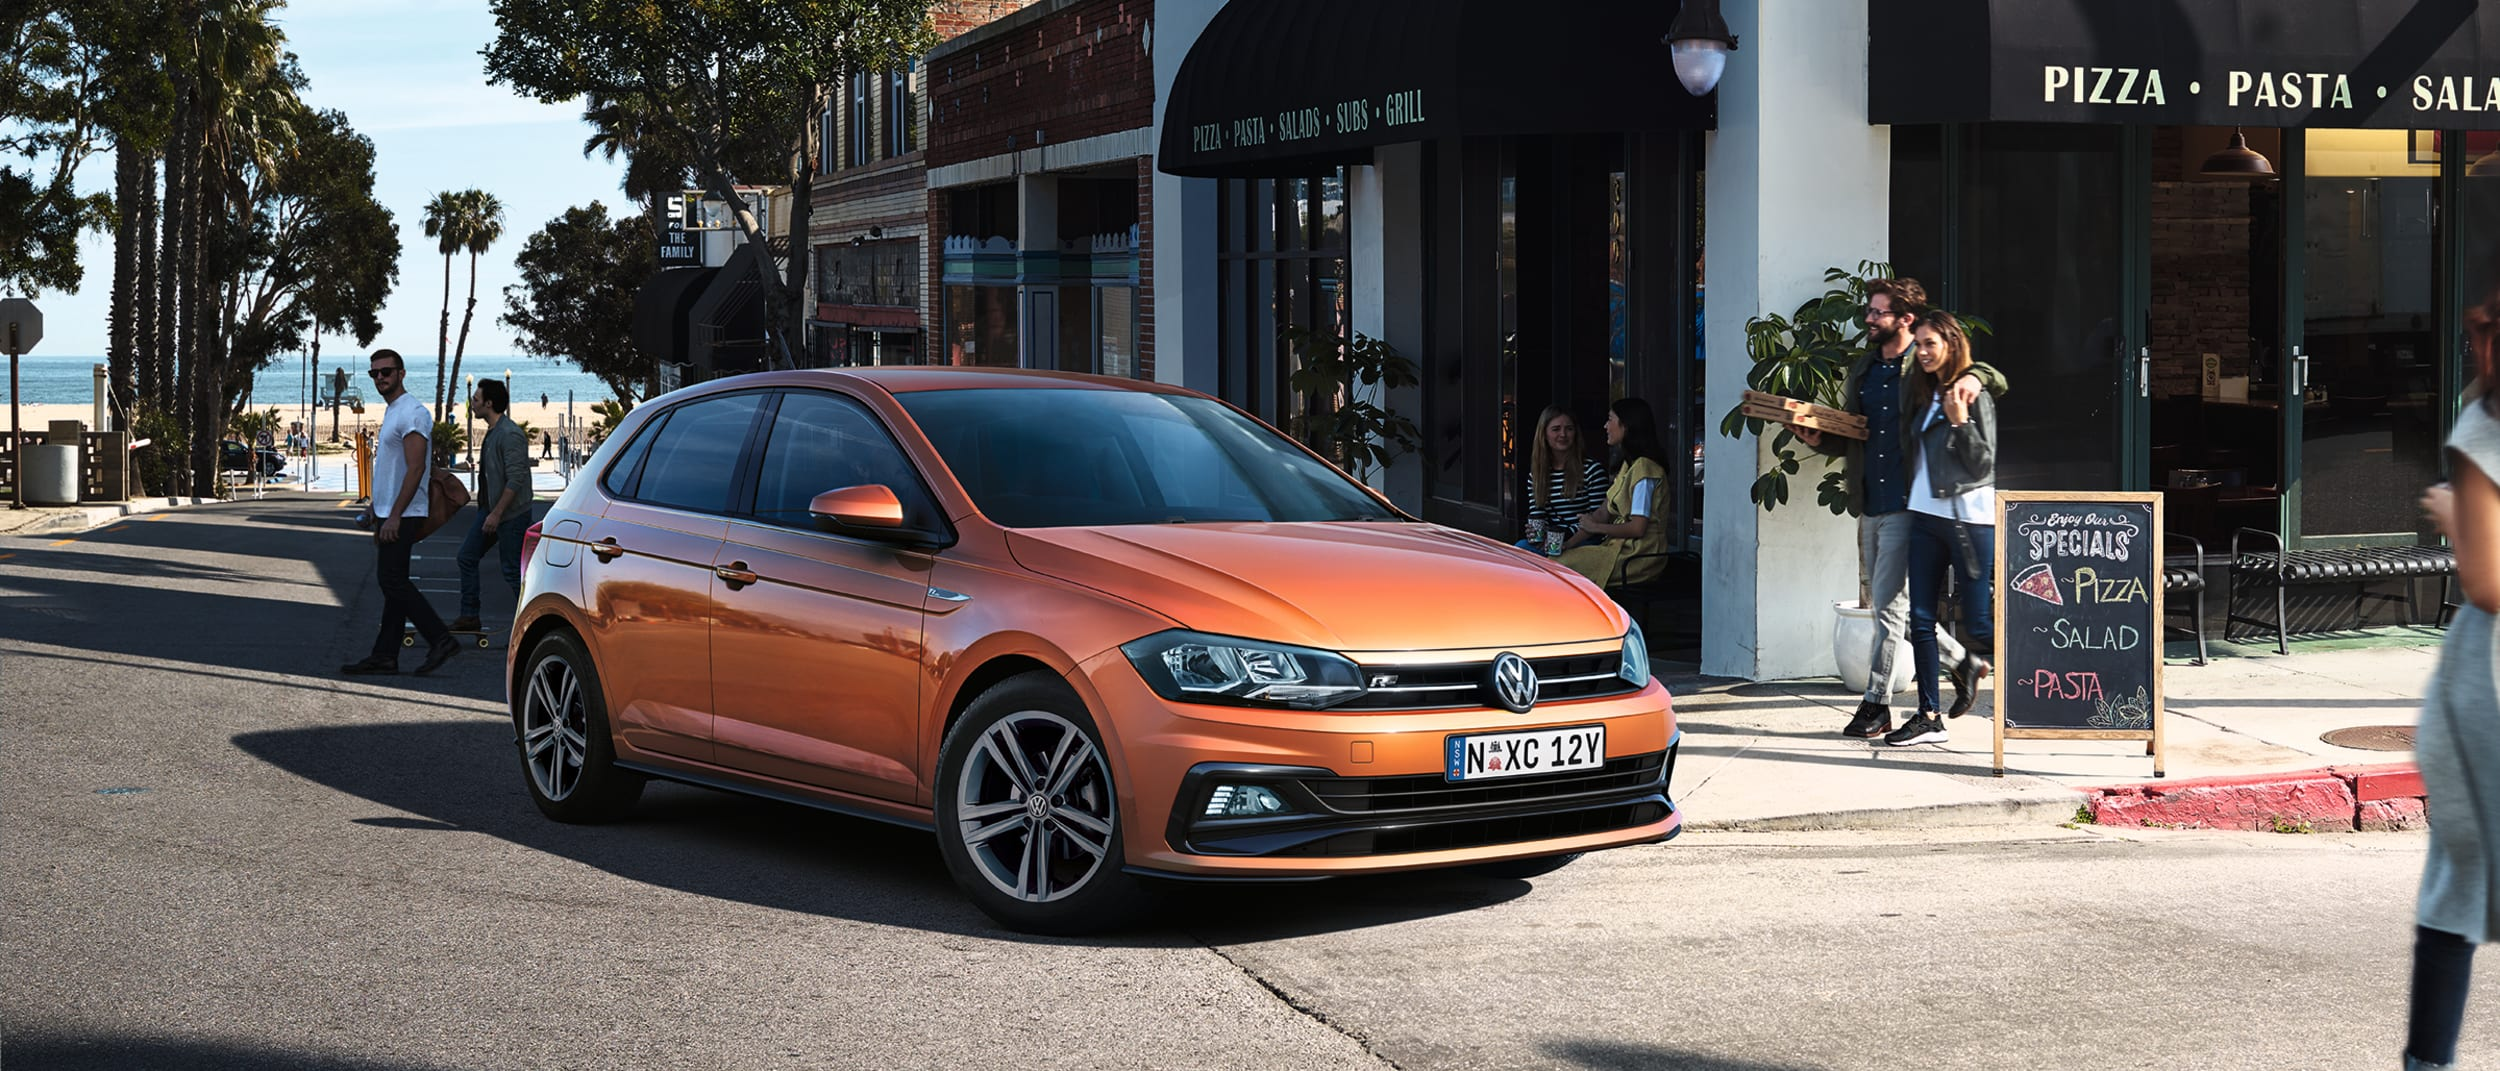 The new Volkswagen Polo.  More Polo. Less Drama.